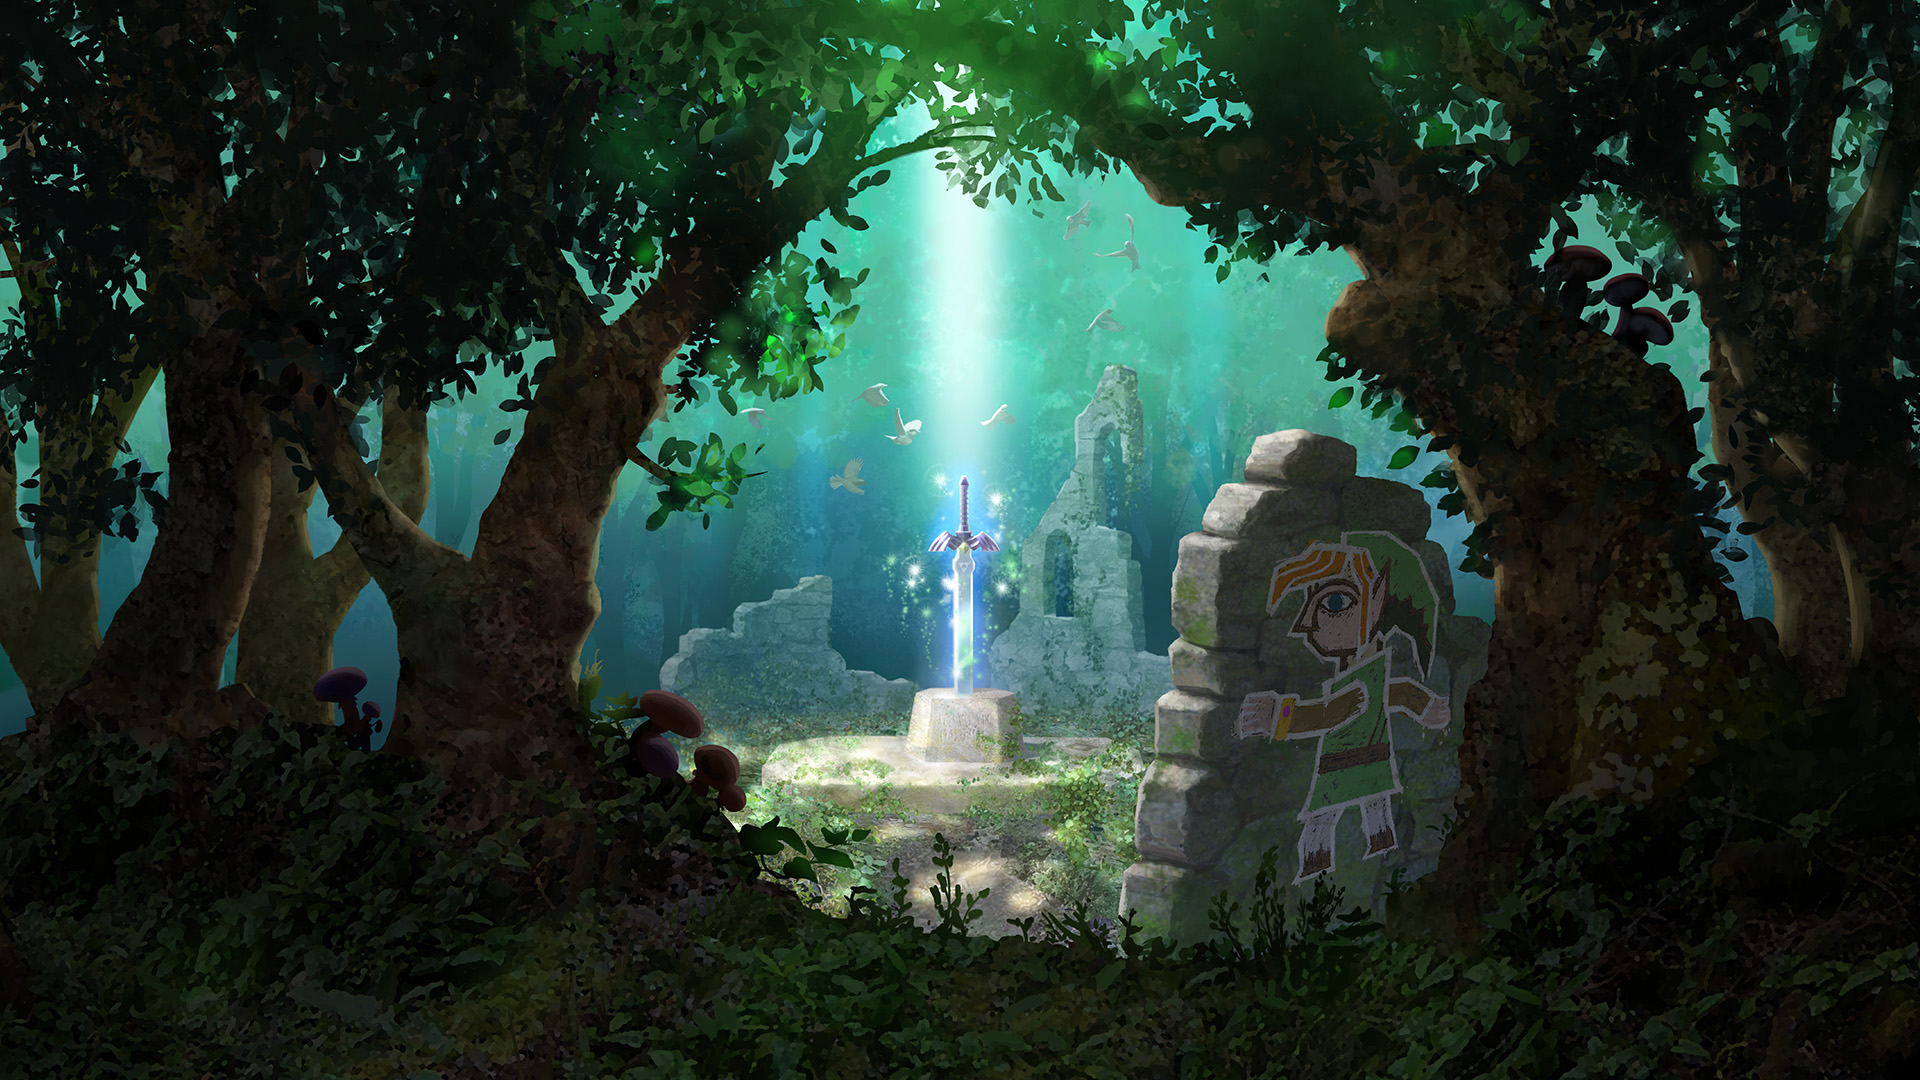 zelda jeux vidéo the legend de zelda: a link between worlds